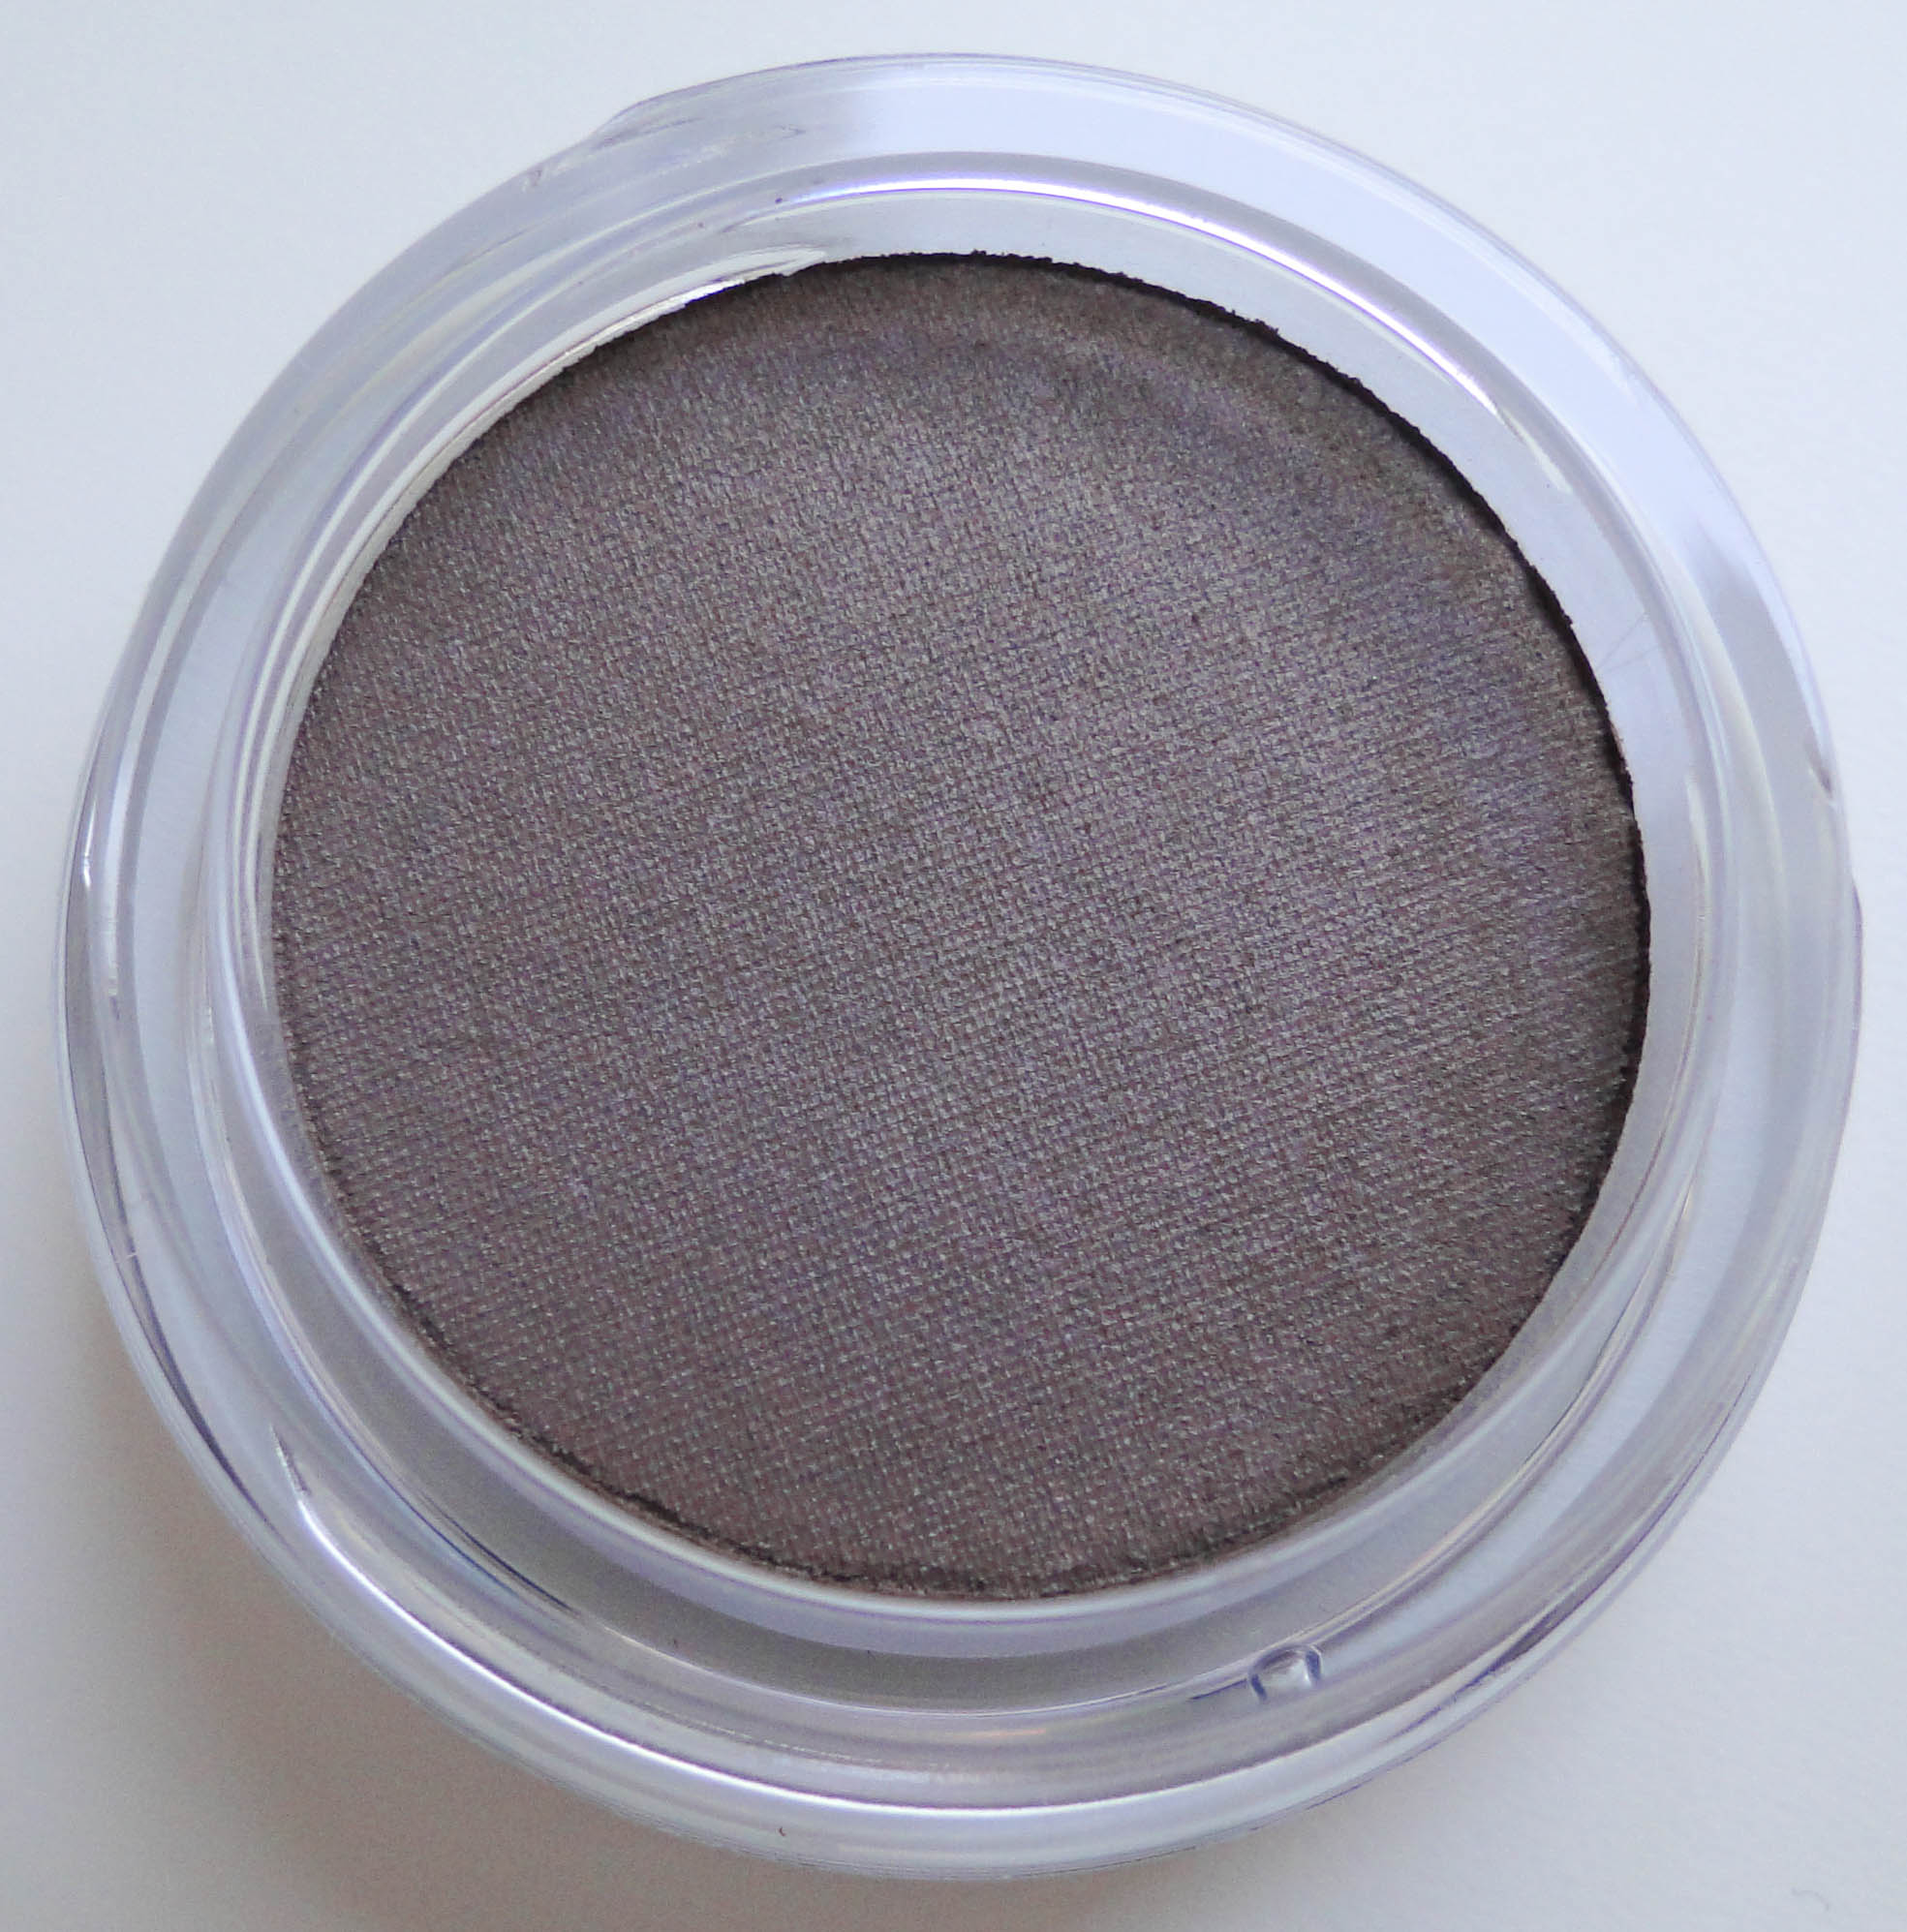 Clarins Ombre Matte Cream to Powder Eyeshadows-3